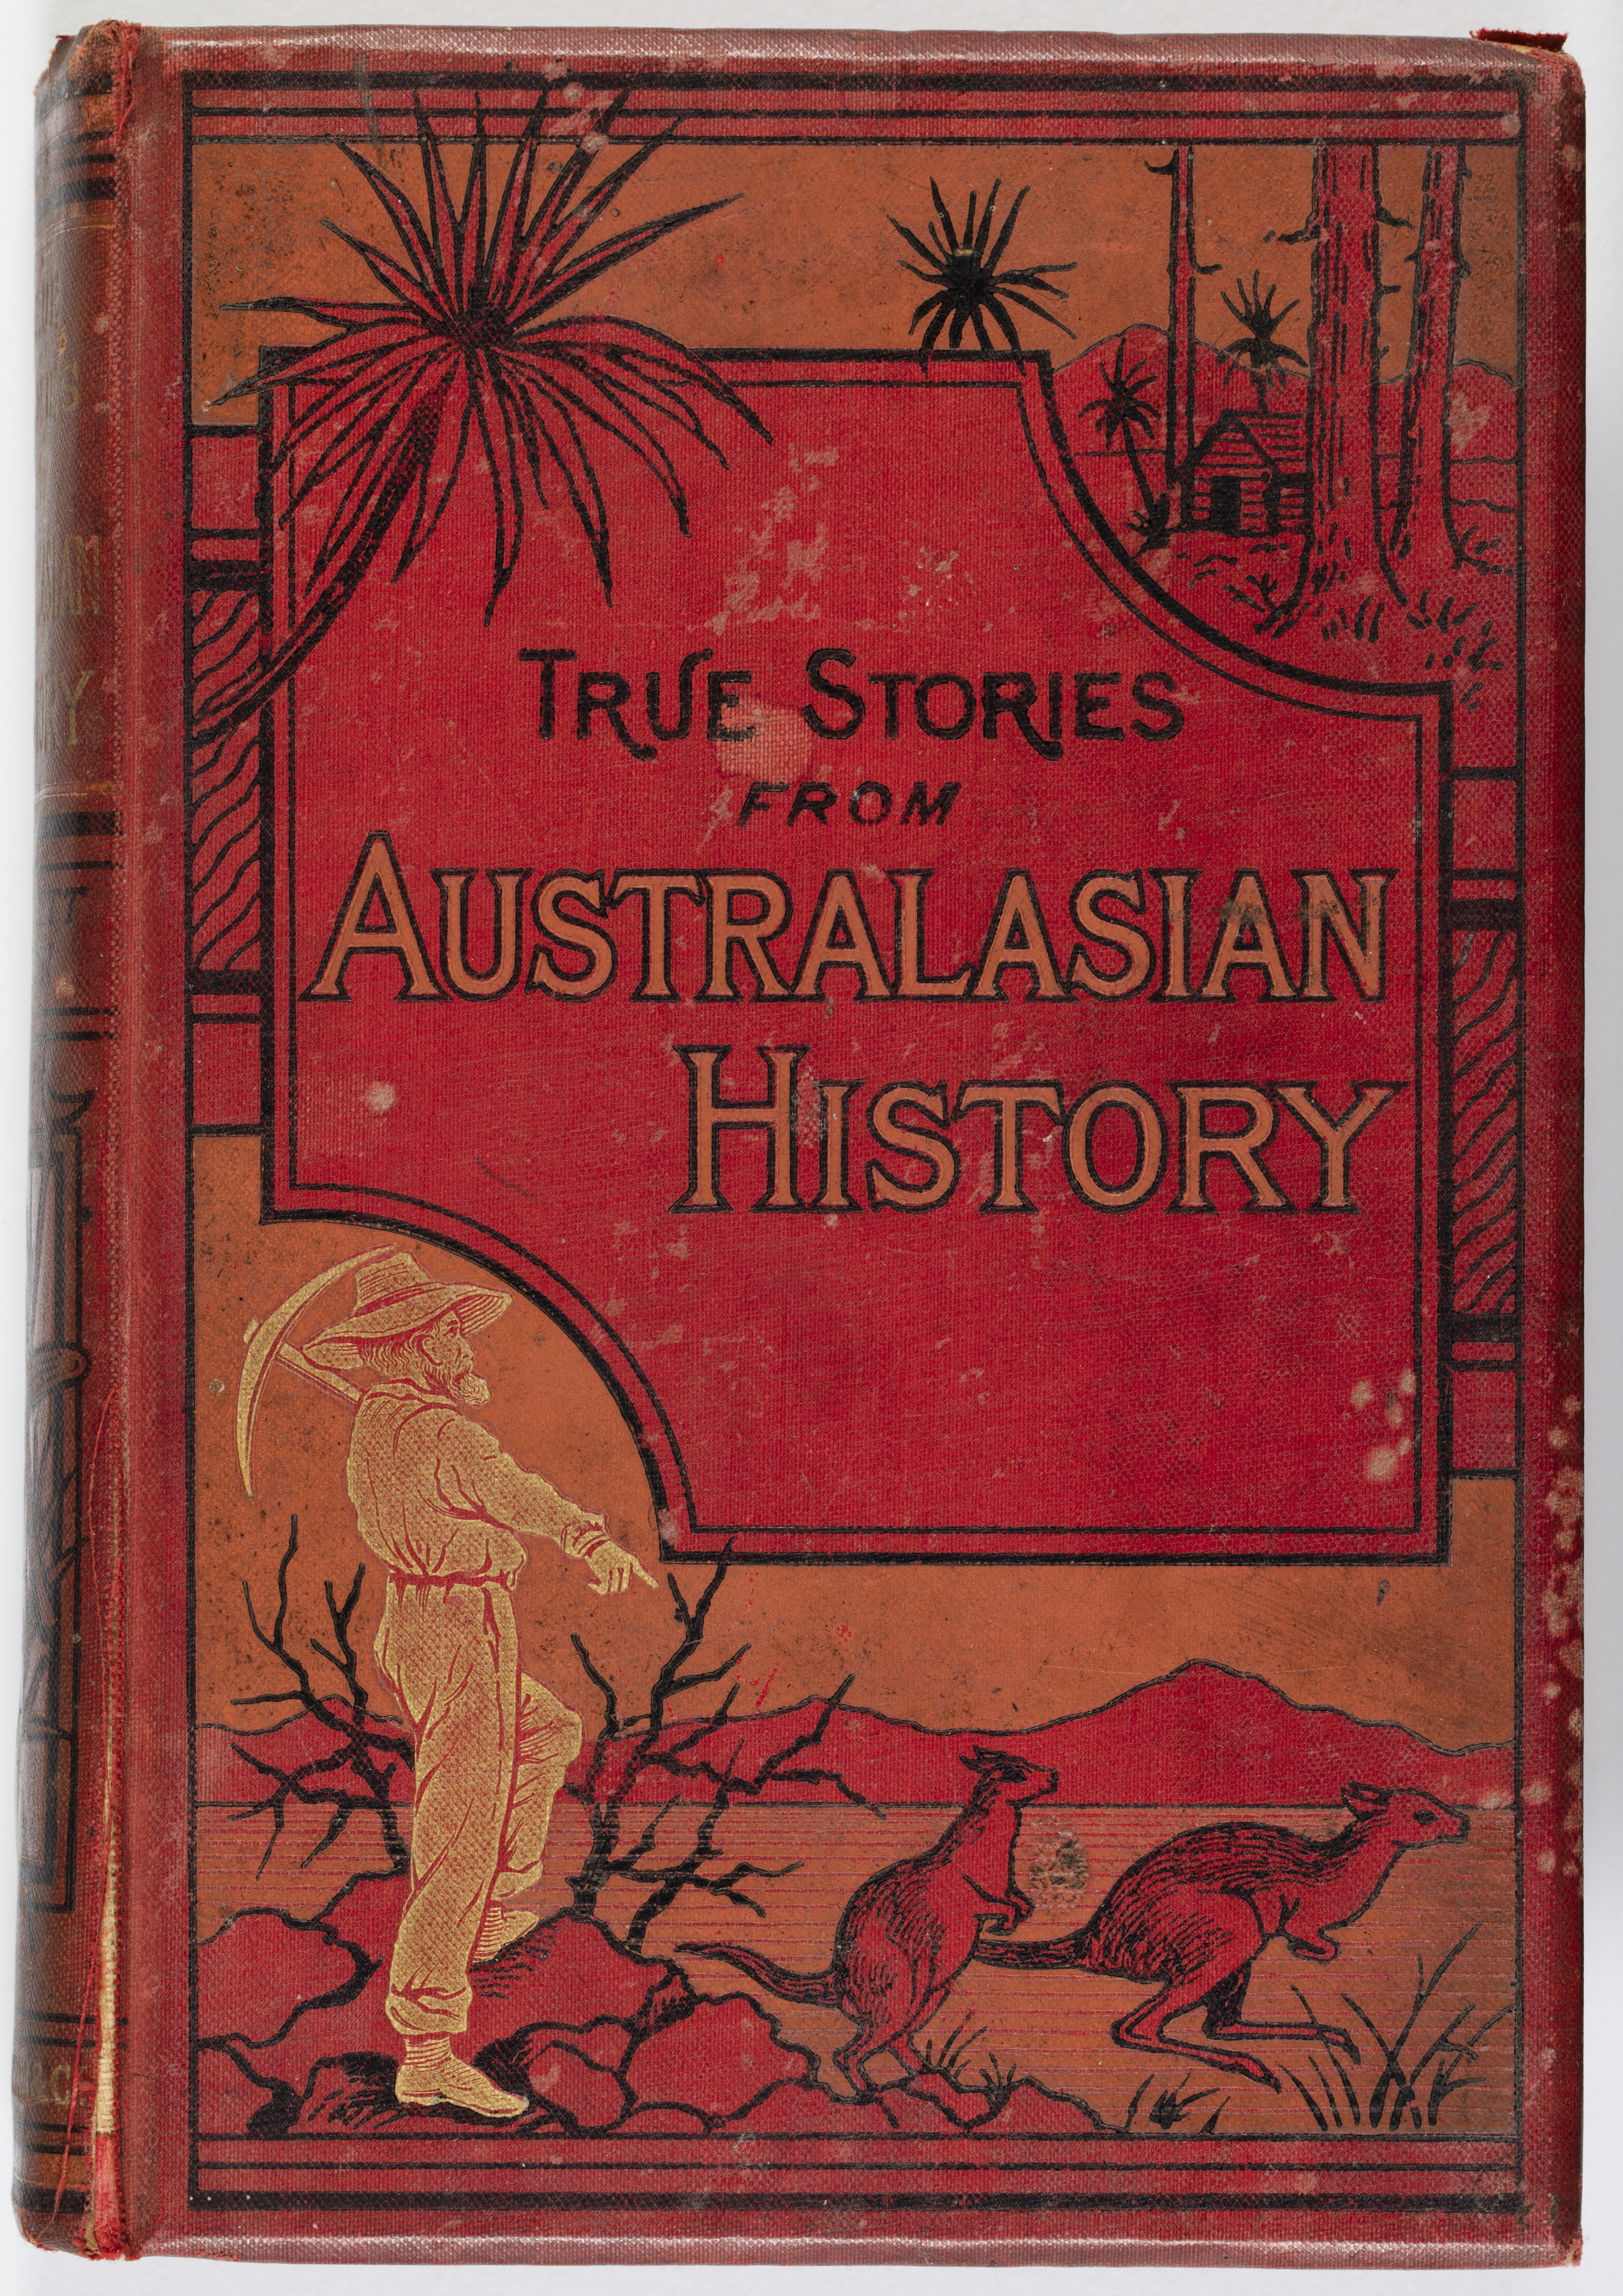 Cover of the True Stories from Australian History Book